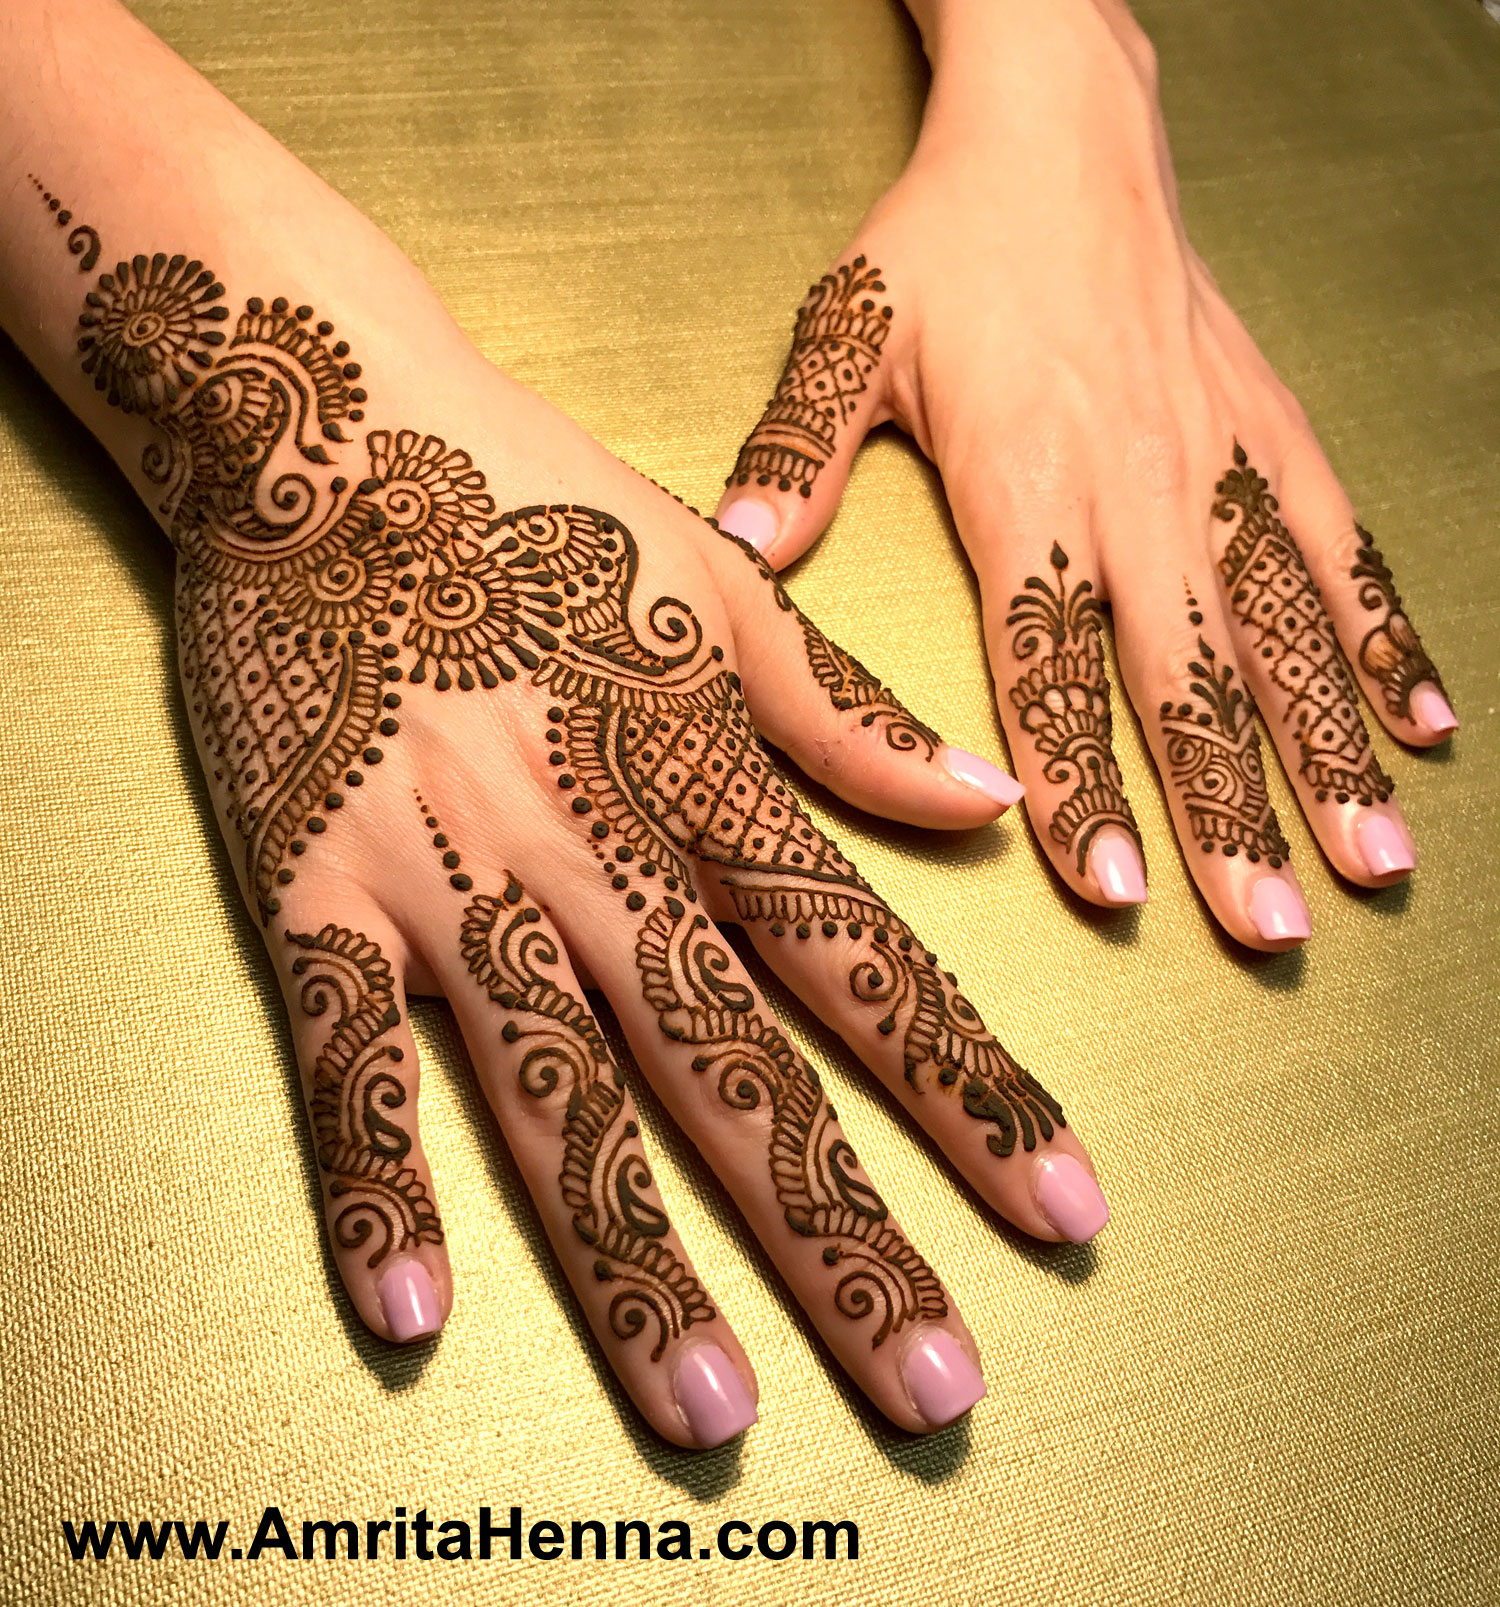 Amazing Mehndi Party Ideas : Top latest unique henna designs for diwali